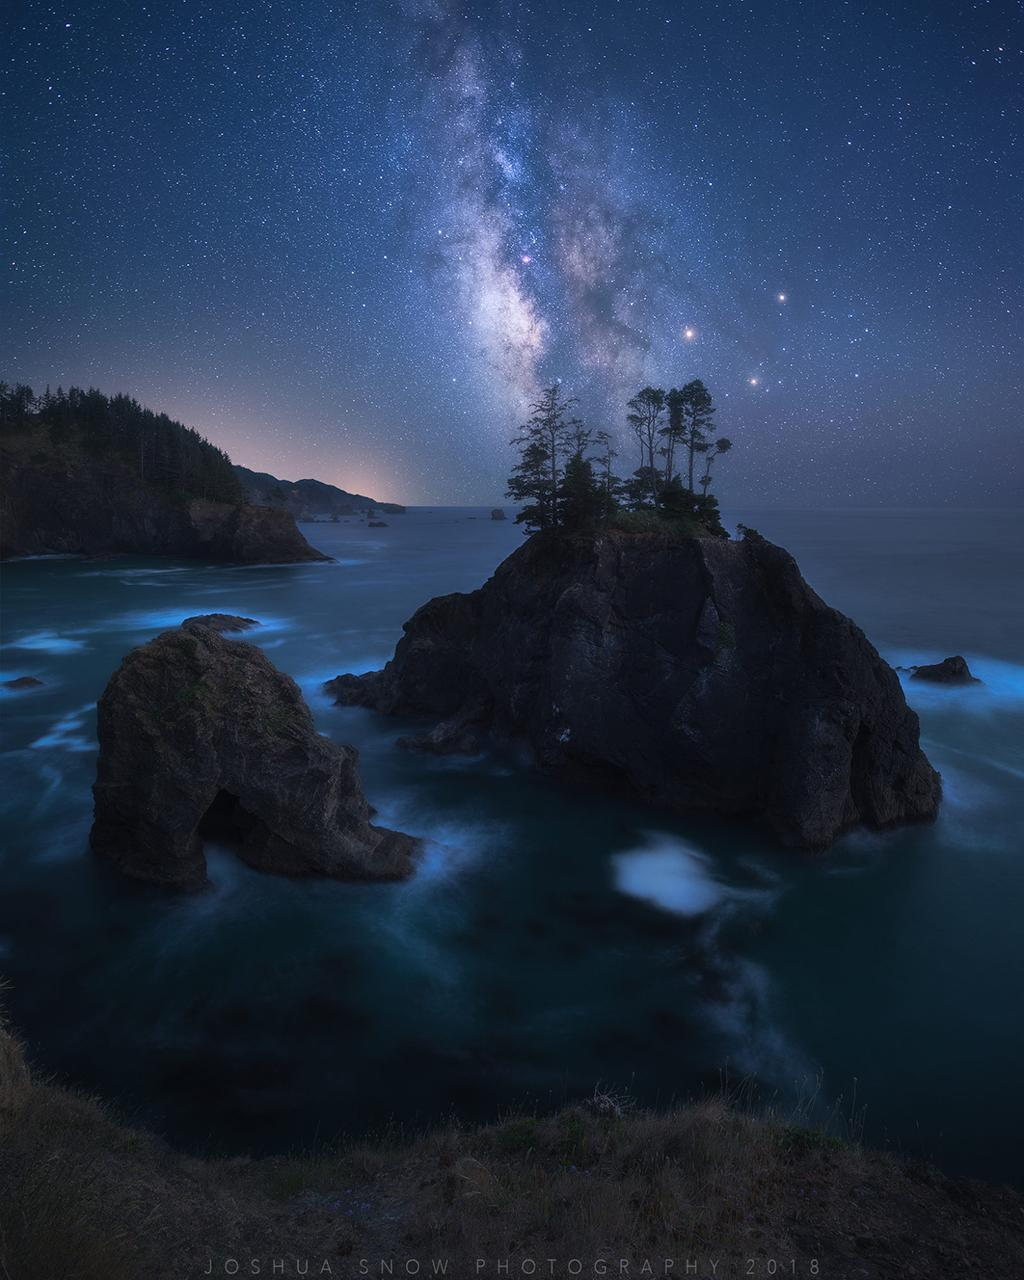 """Today's Photo Of The Day is """"Genesis"""" by Joshua Snow. Location: Oregon."""